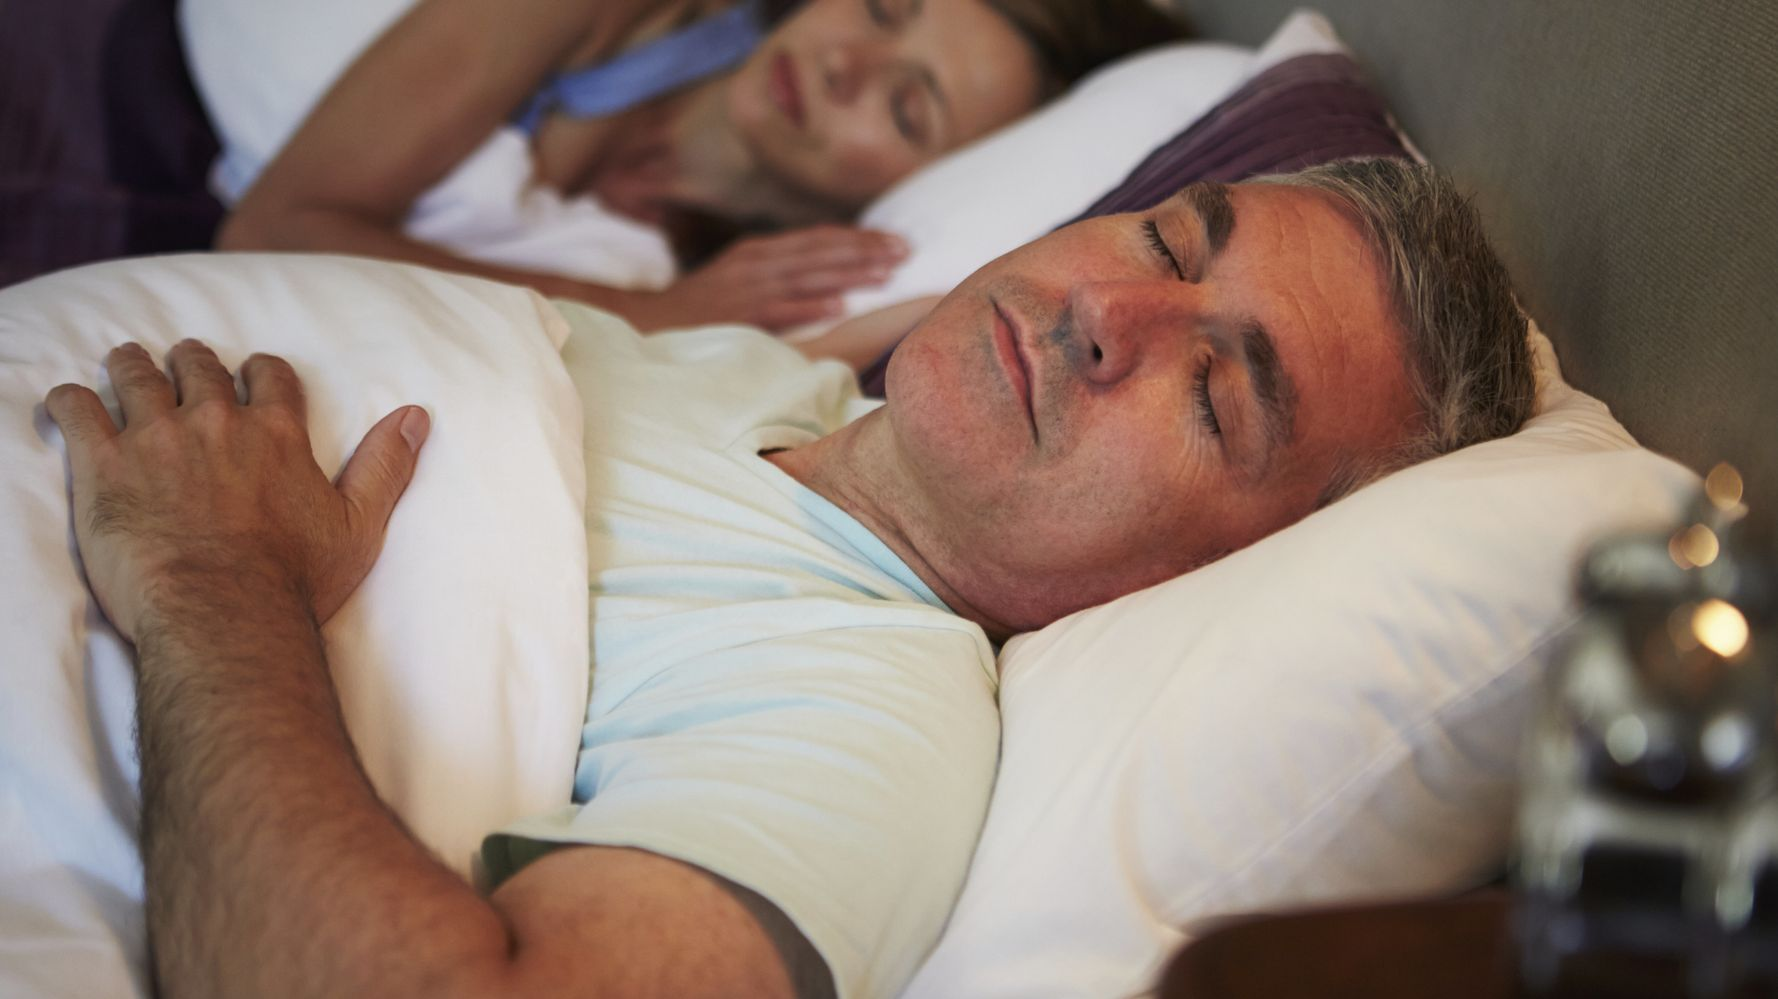 15 Science-Backed Ways To Fall Asleep Faster | HuffPost